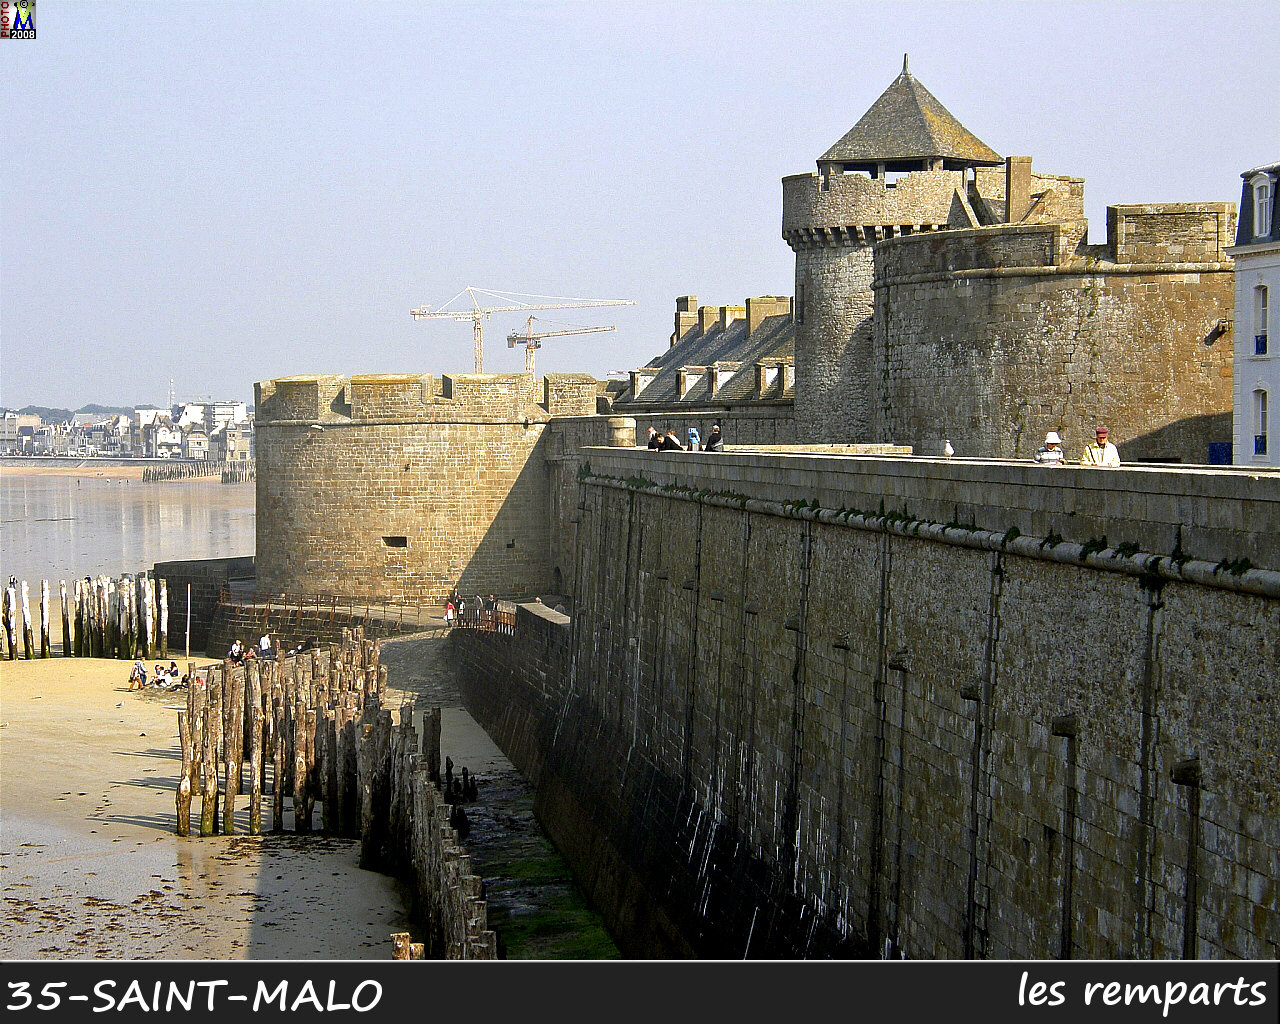 35StMALO_remparts_114.jpg